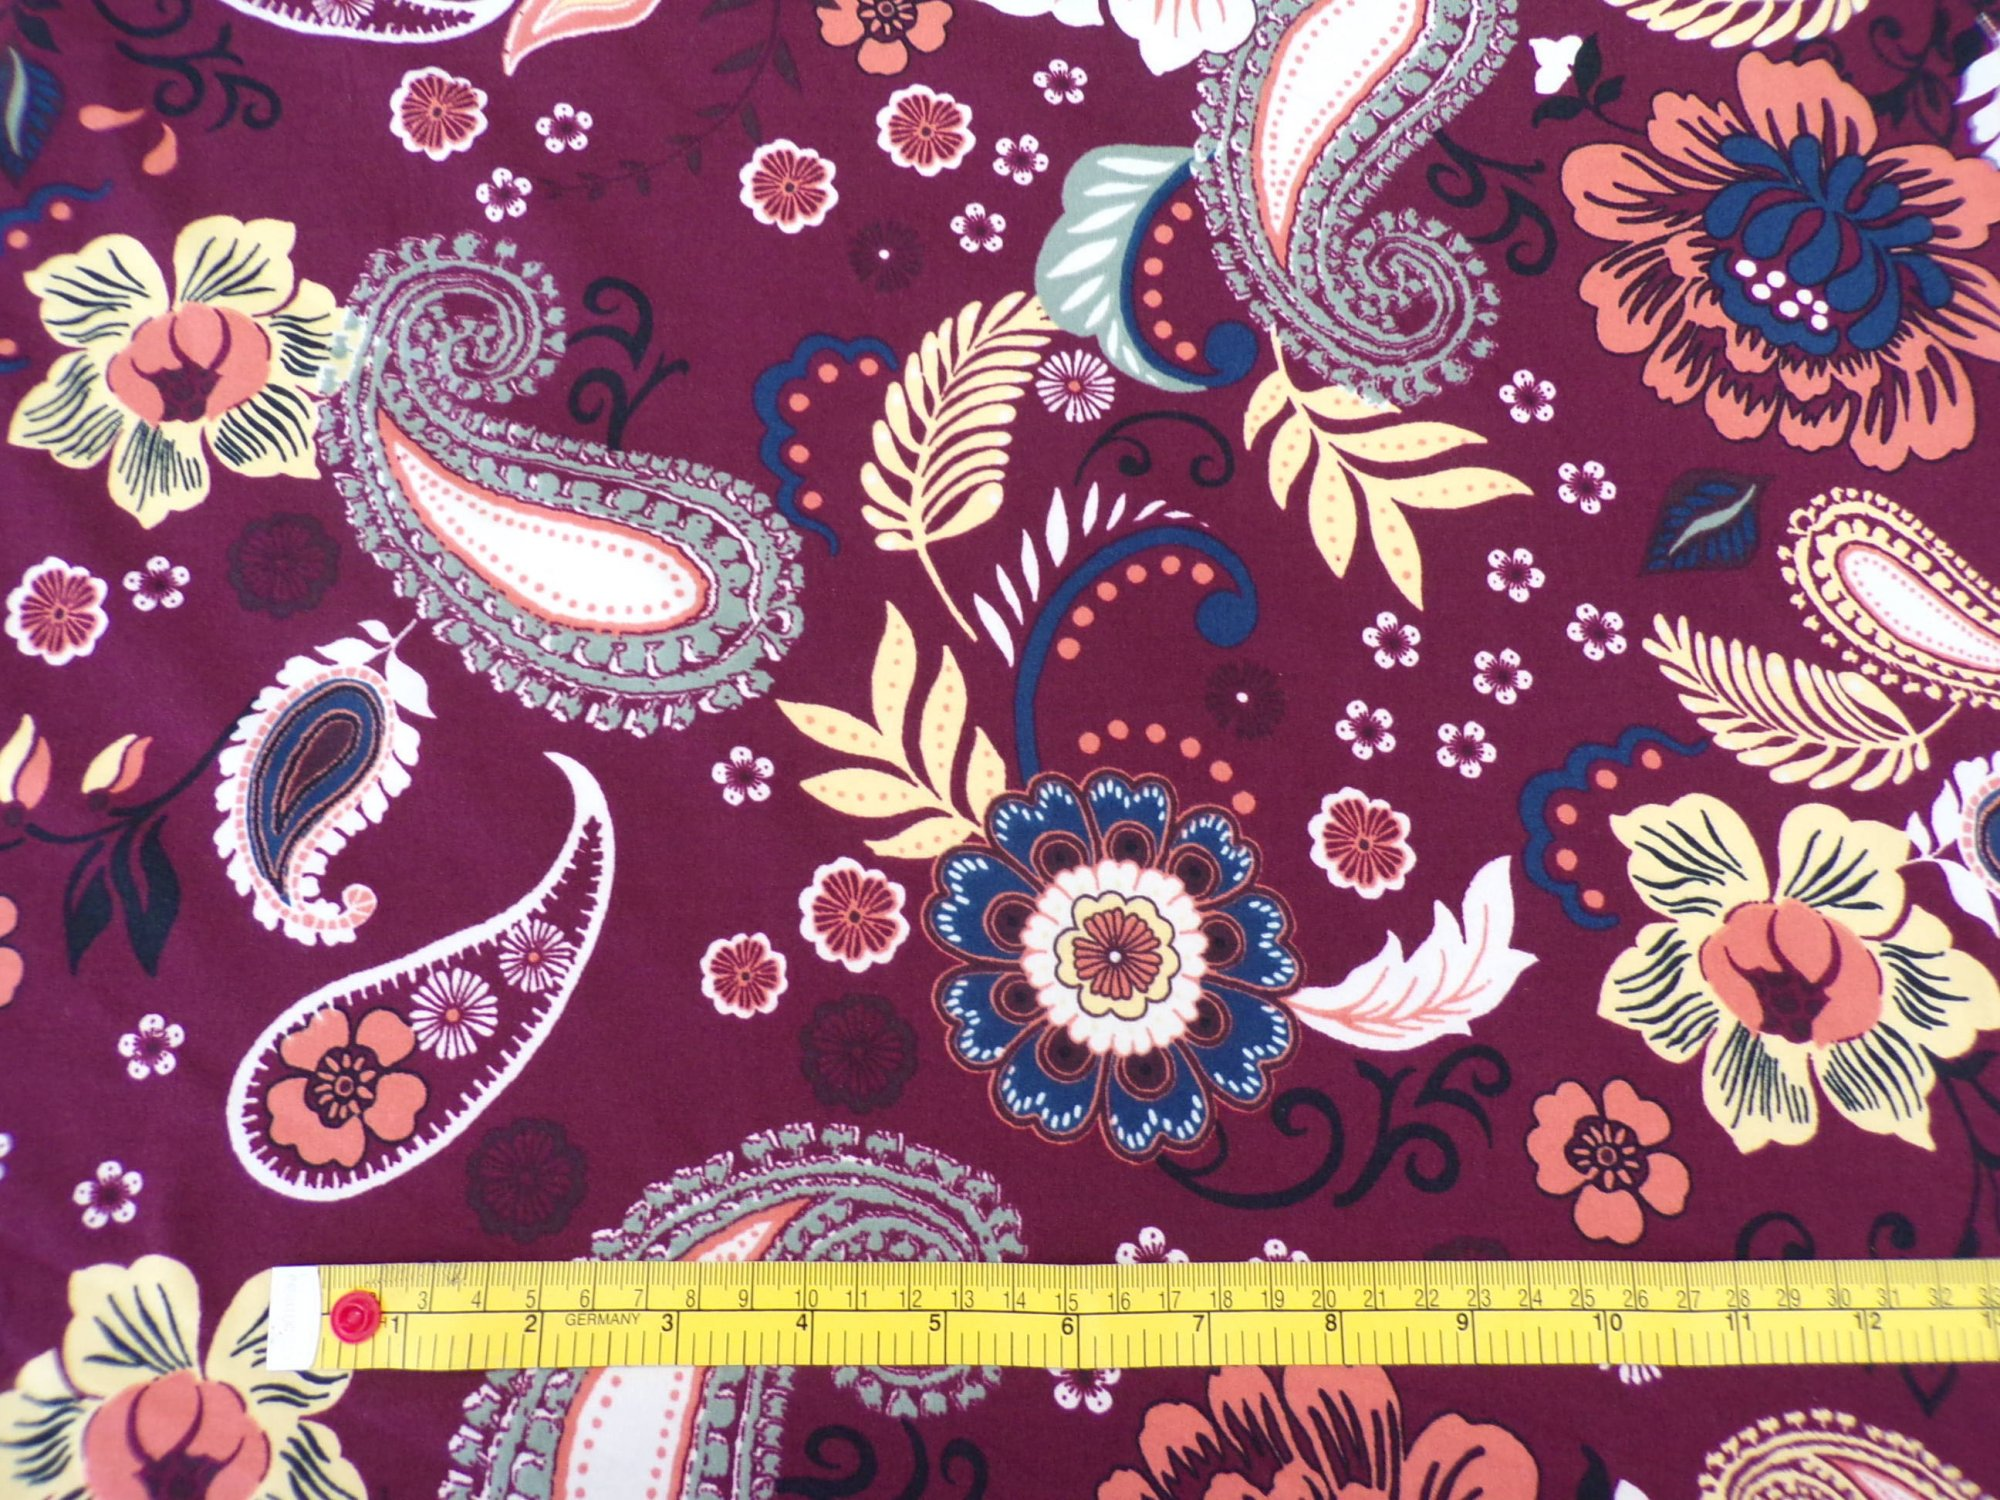 Brushed Polyester - Retro Floral Paisley Garden Burgundy